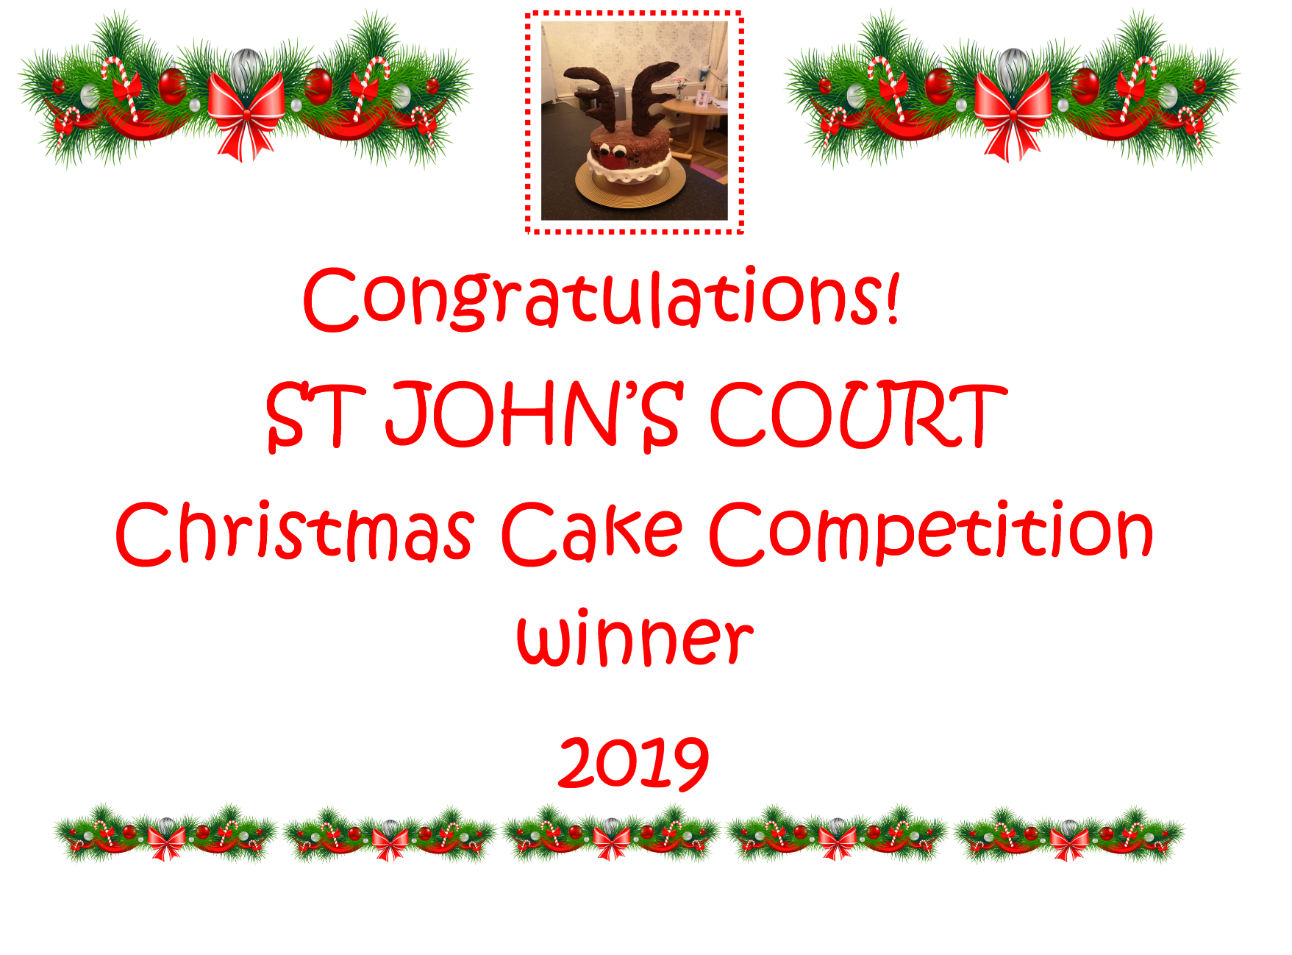 St John's Court - Winners of the Christmas Cake Competition Image